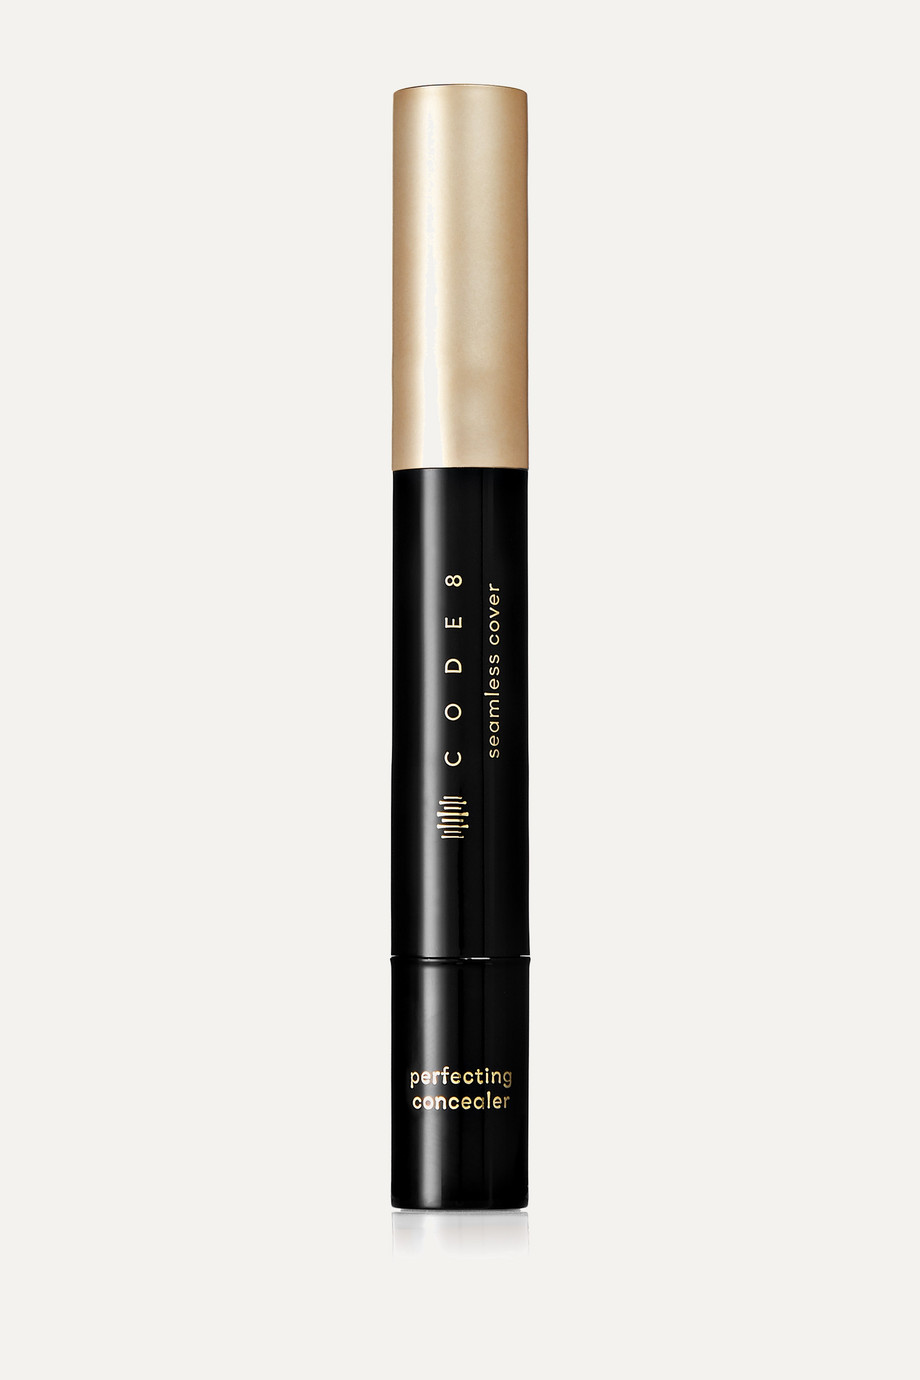 Code8 Seamless Cover Perfecting Concealer - N25